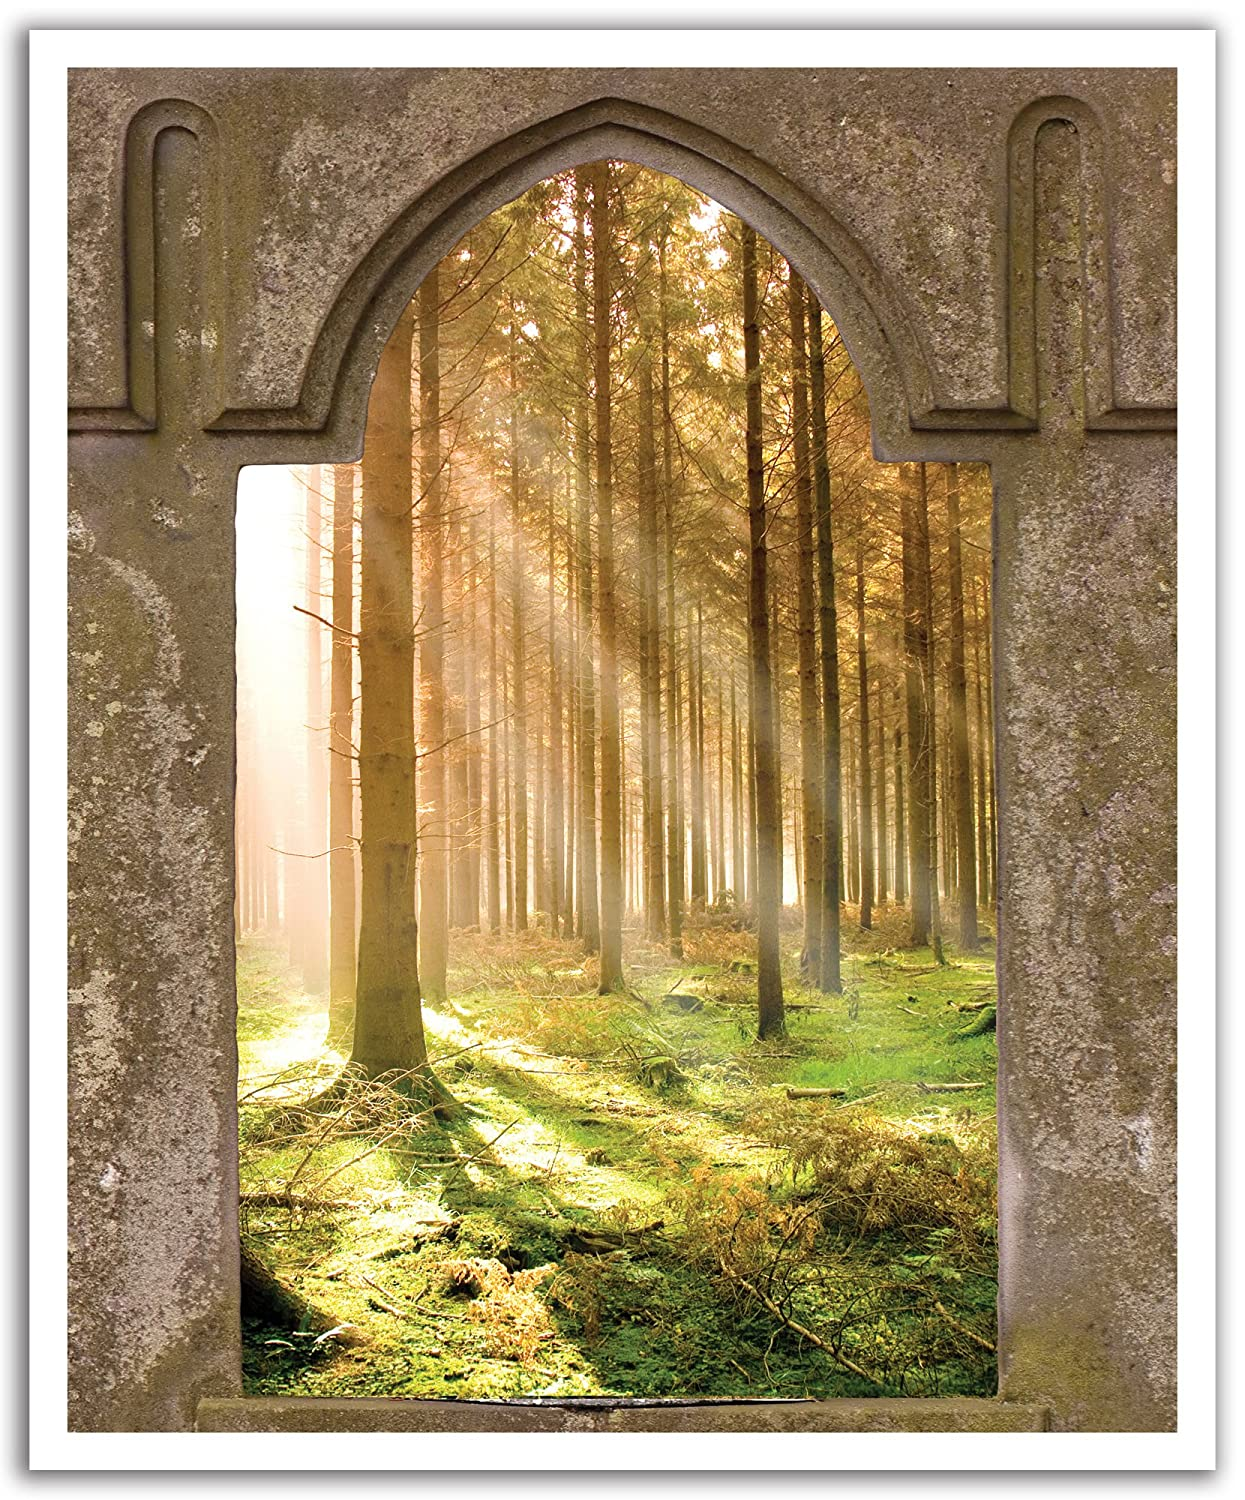 19.75-Inch x 24-Inch JP London POSLT0064 uStrip Lite Removable Wall Decal Sticker Mural Game of Thrones Mystic Forest Window